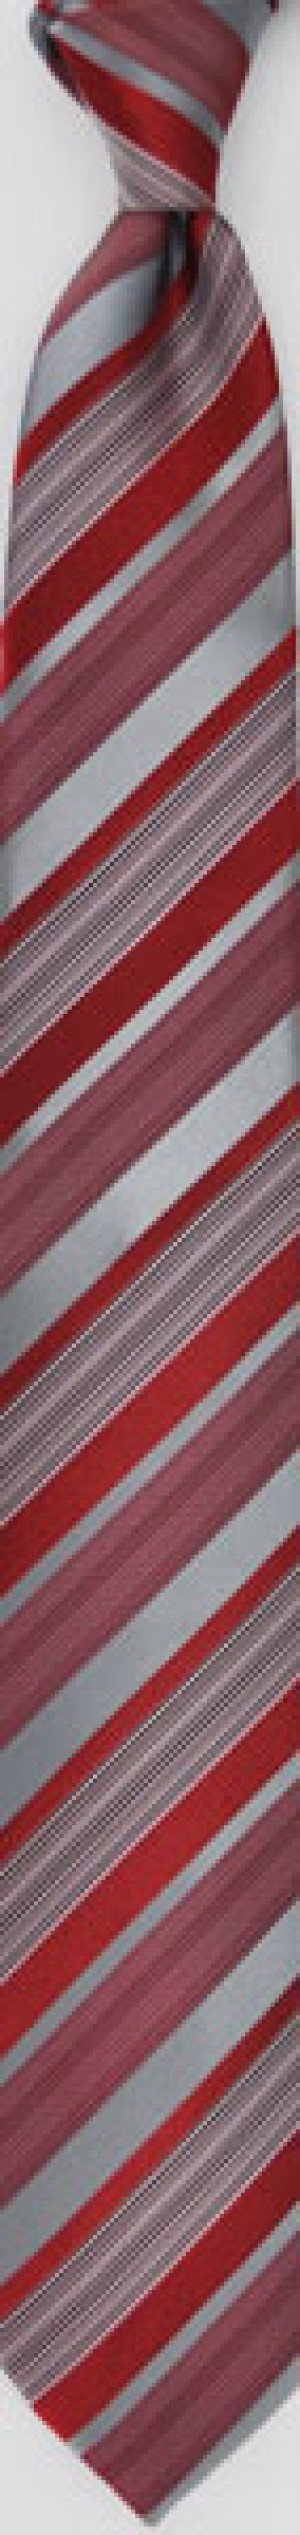 TIE - Red Stripe